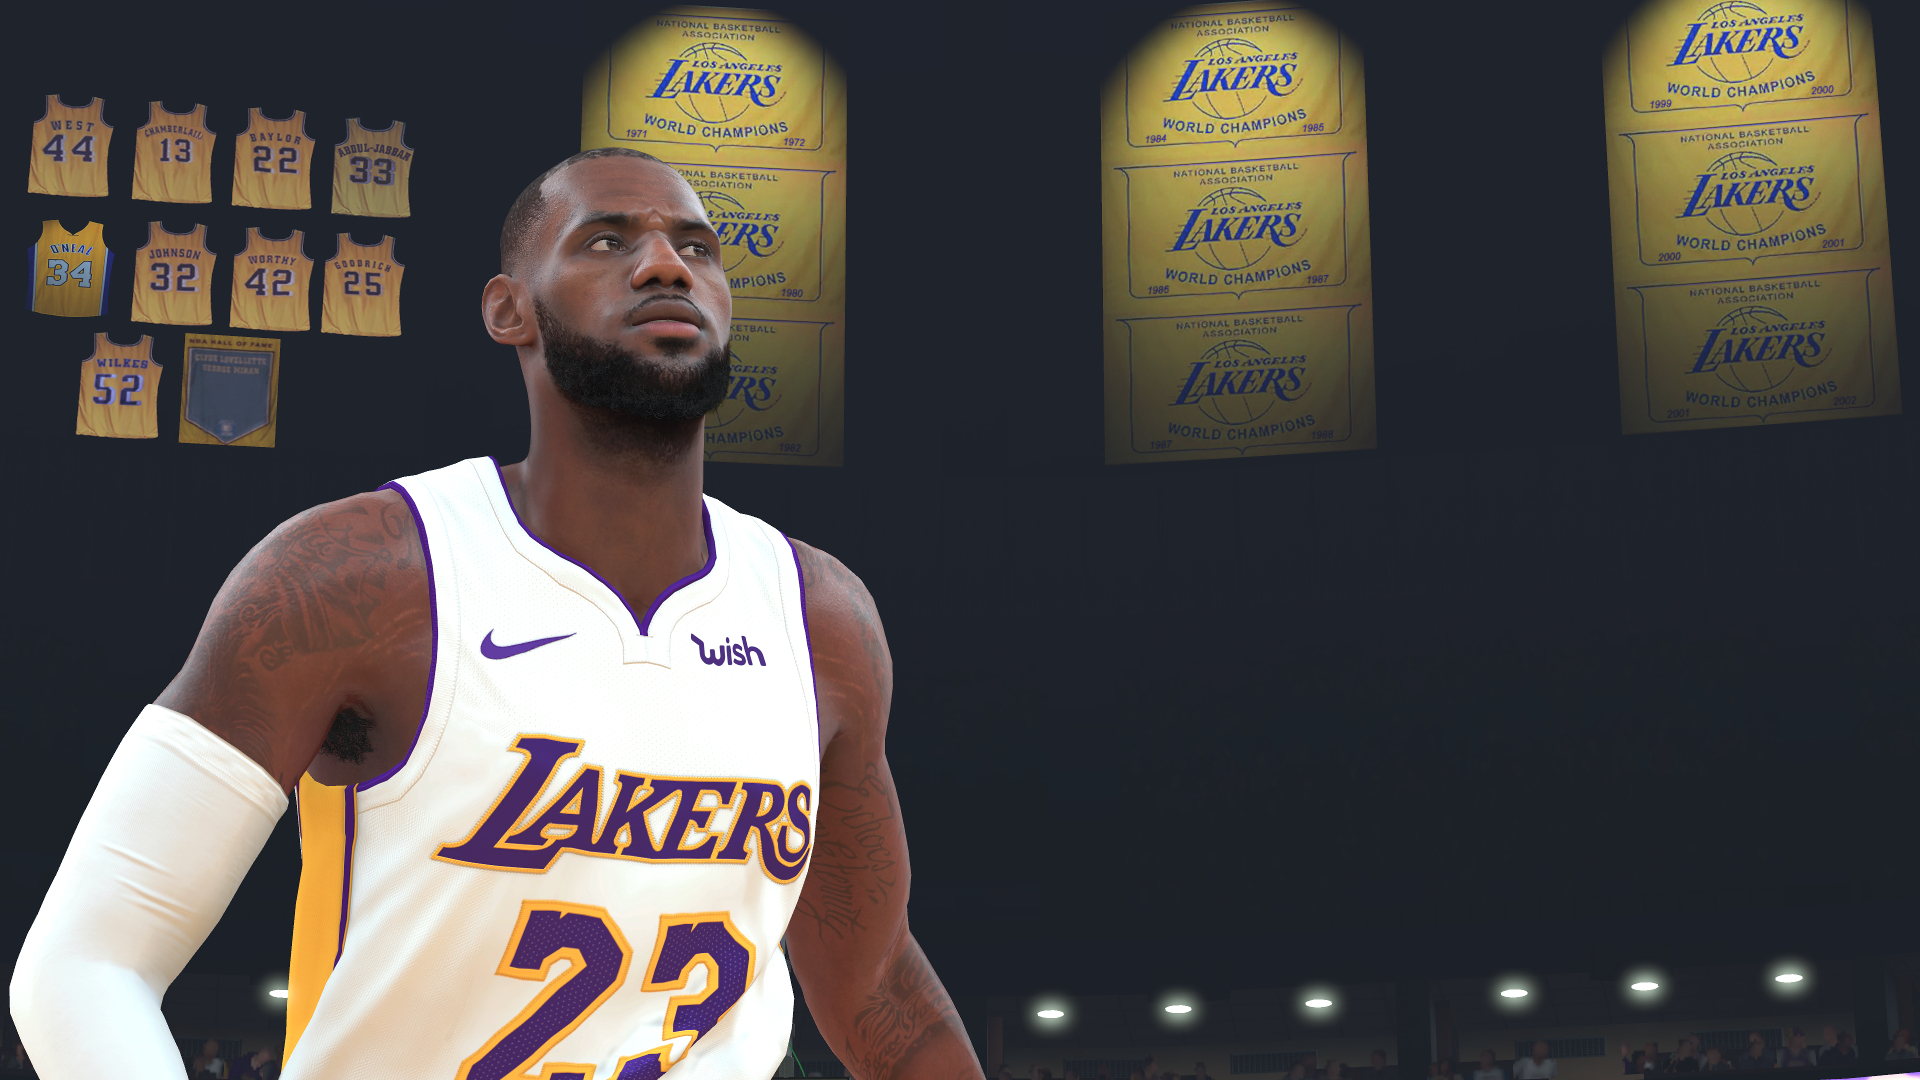 ef1e74f4d49 LeBron James reacts to  NBA 2K19  rating  Not bad  for such an old ...